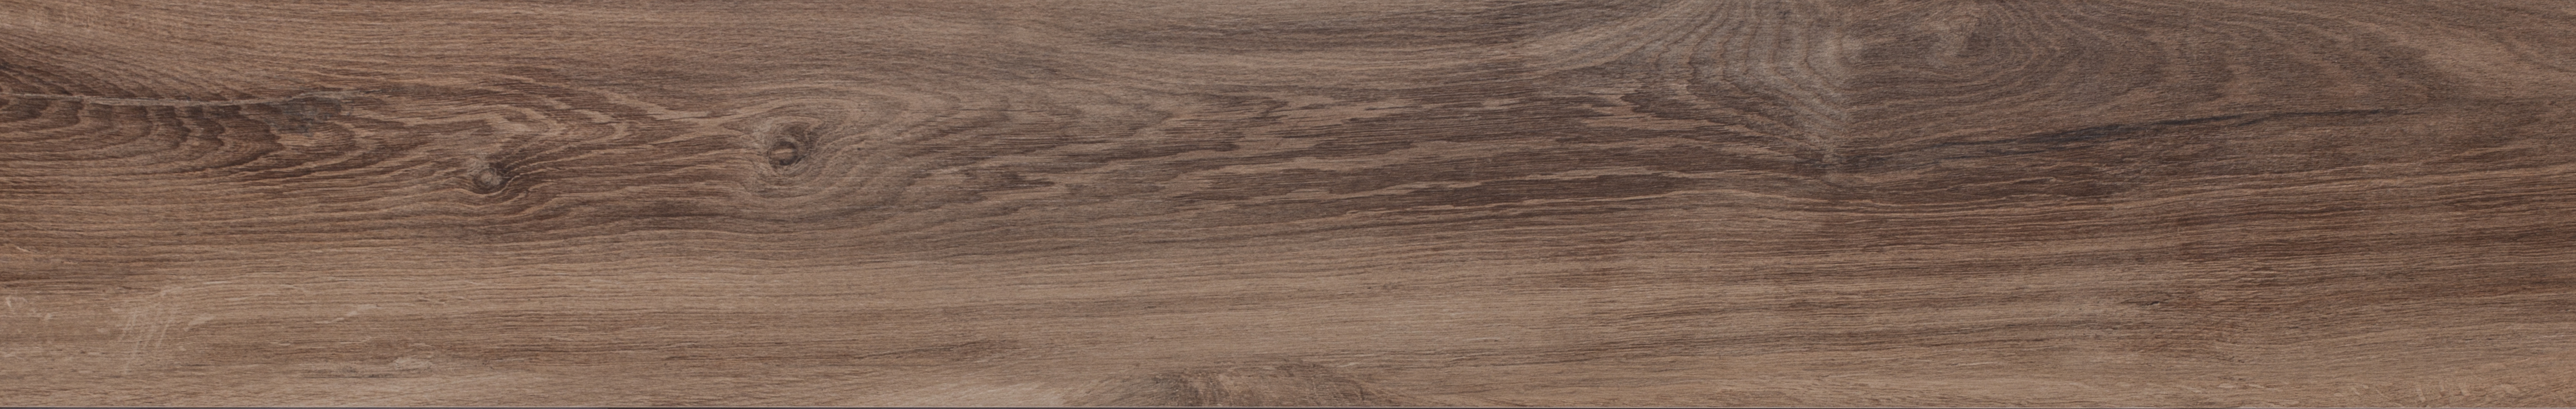 Cavallino Wood Nugat 1202mm x 193mm x 10mm